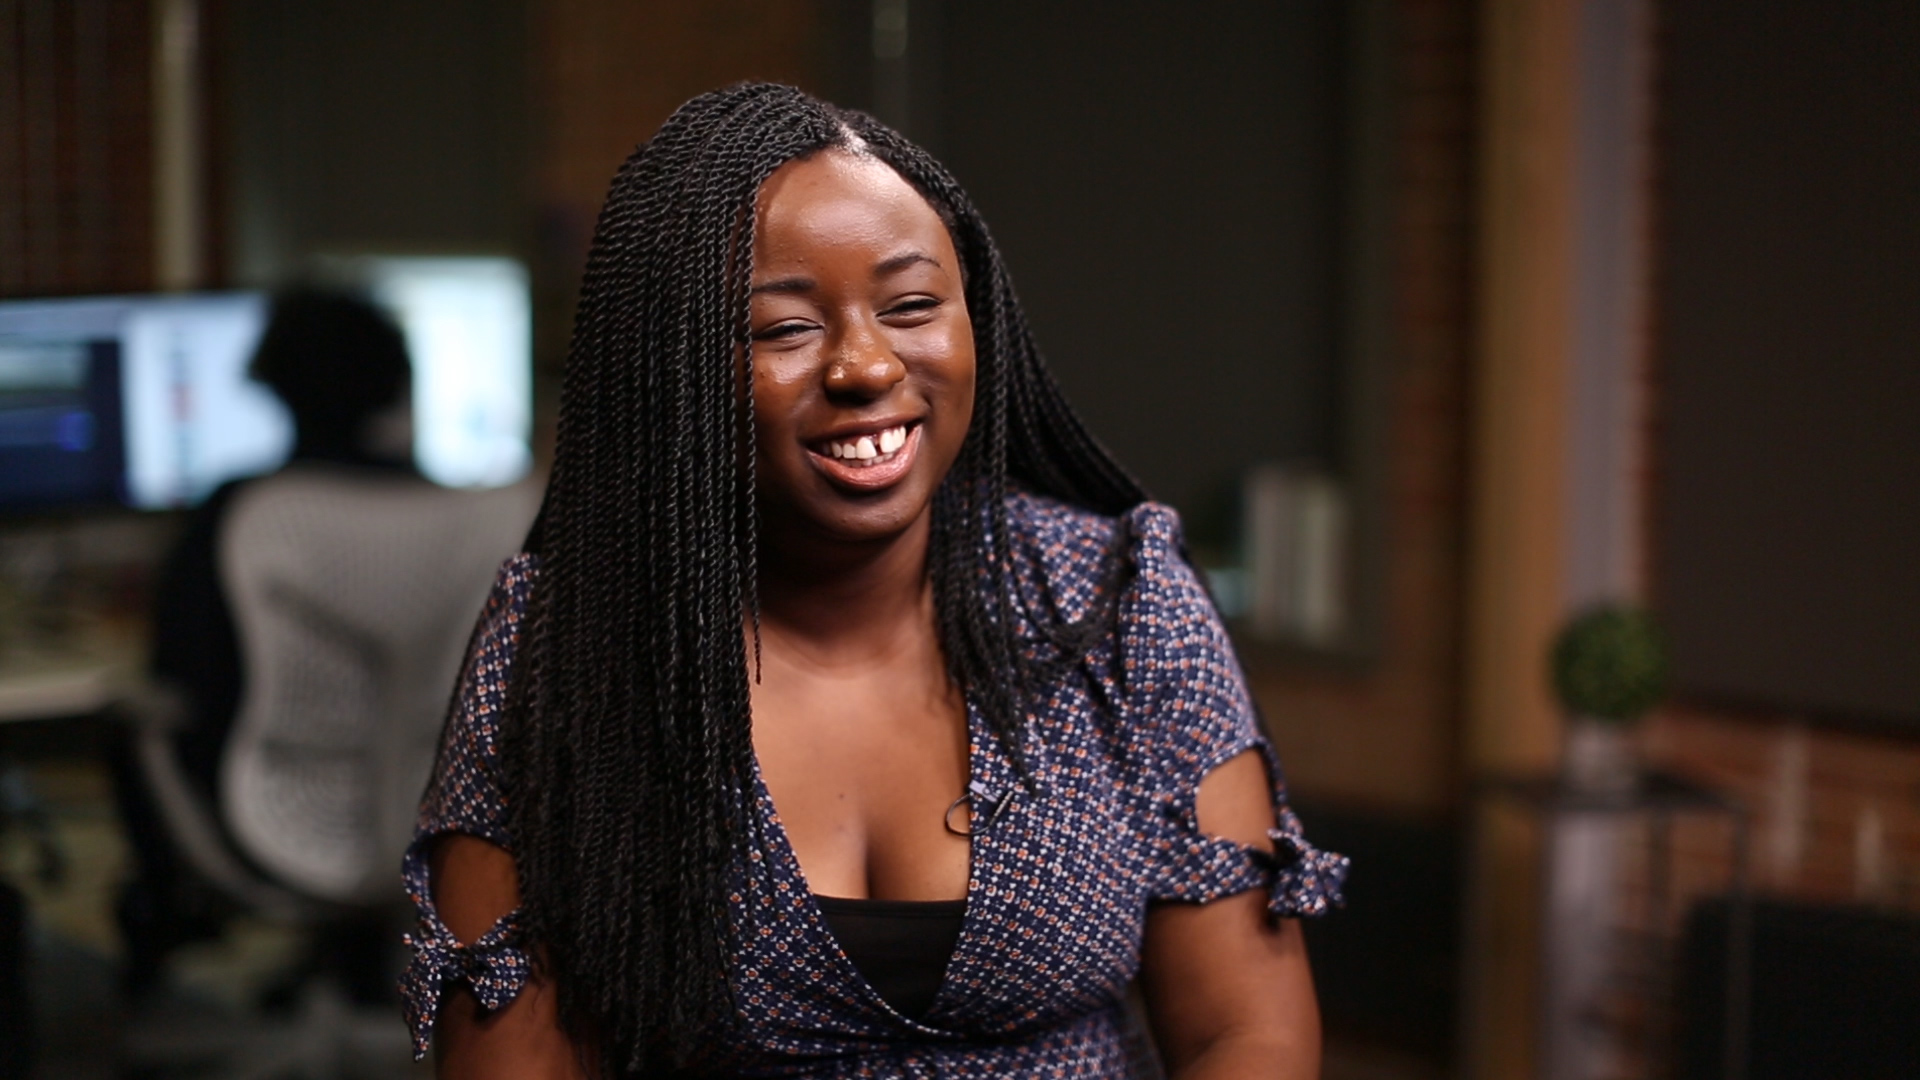 Kharroll-Ann Souffrant speaks to HuffPost Canada in our studio in July 2017. (Photo: HuffPost